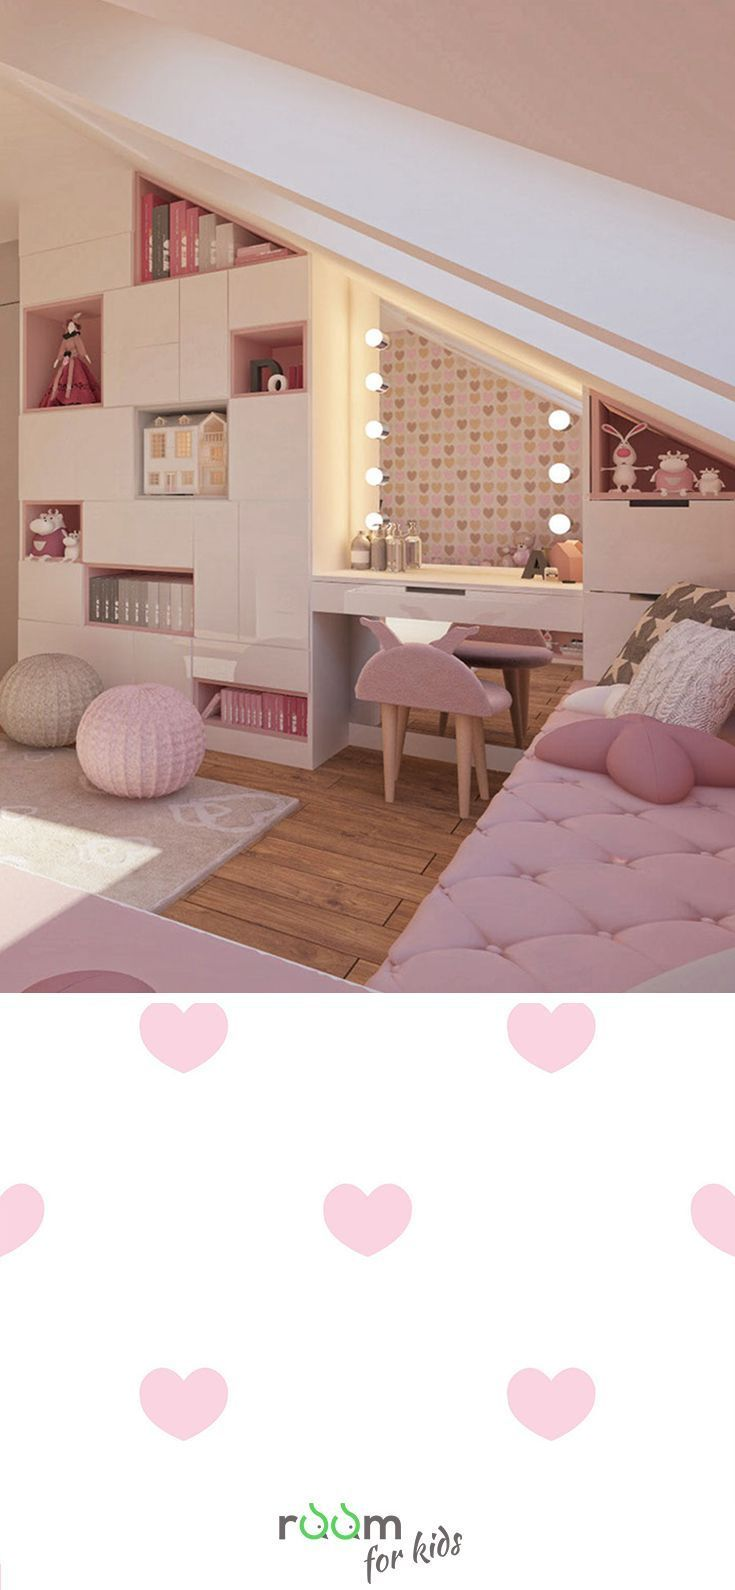 Design idea for a girl's room in pink design